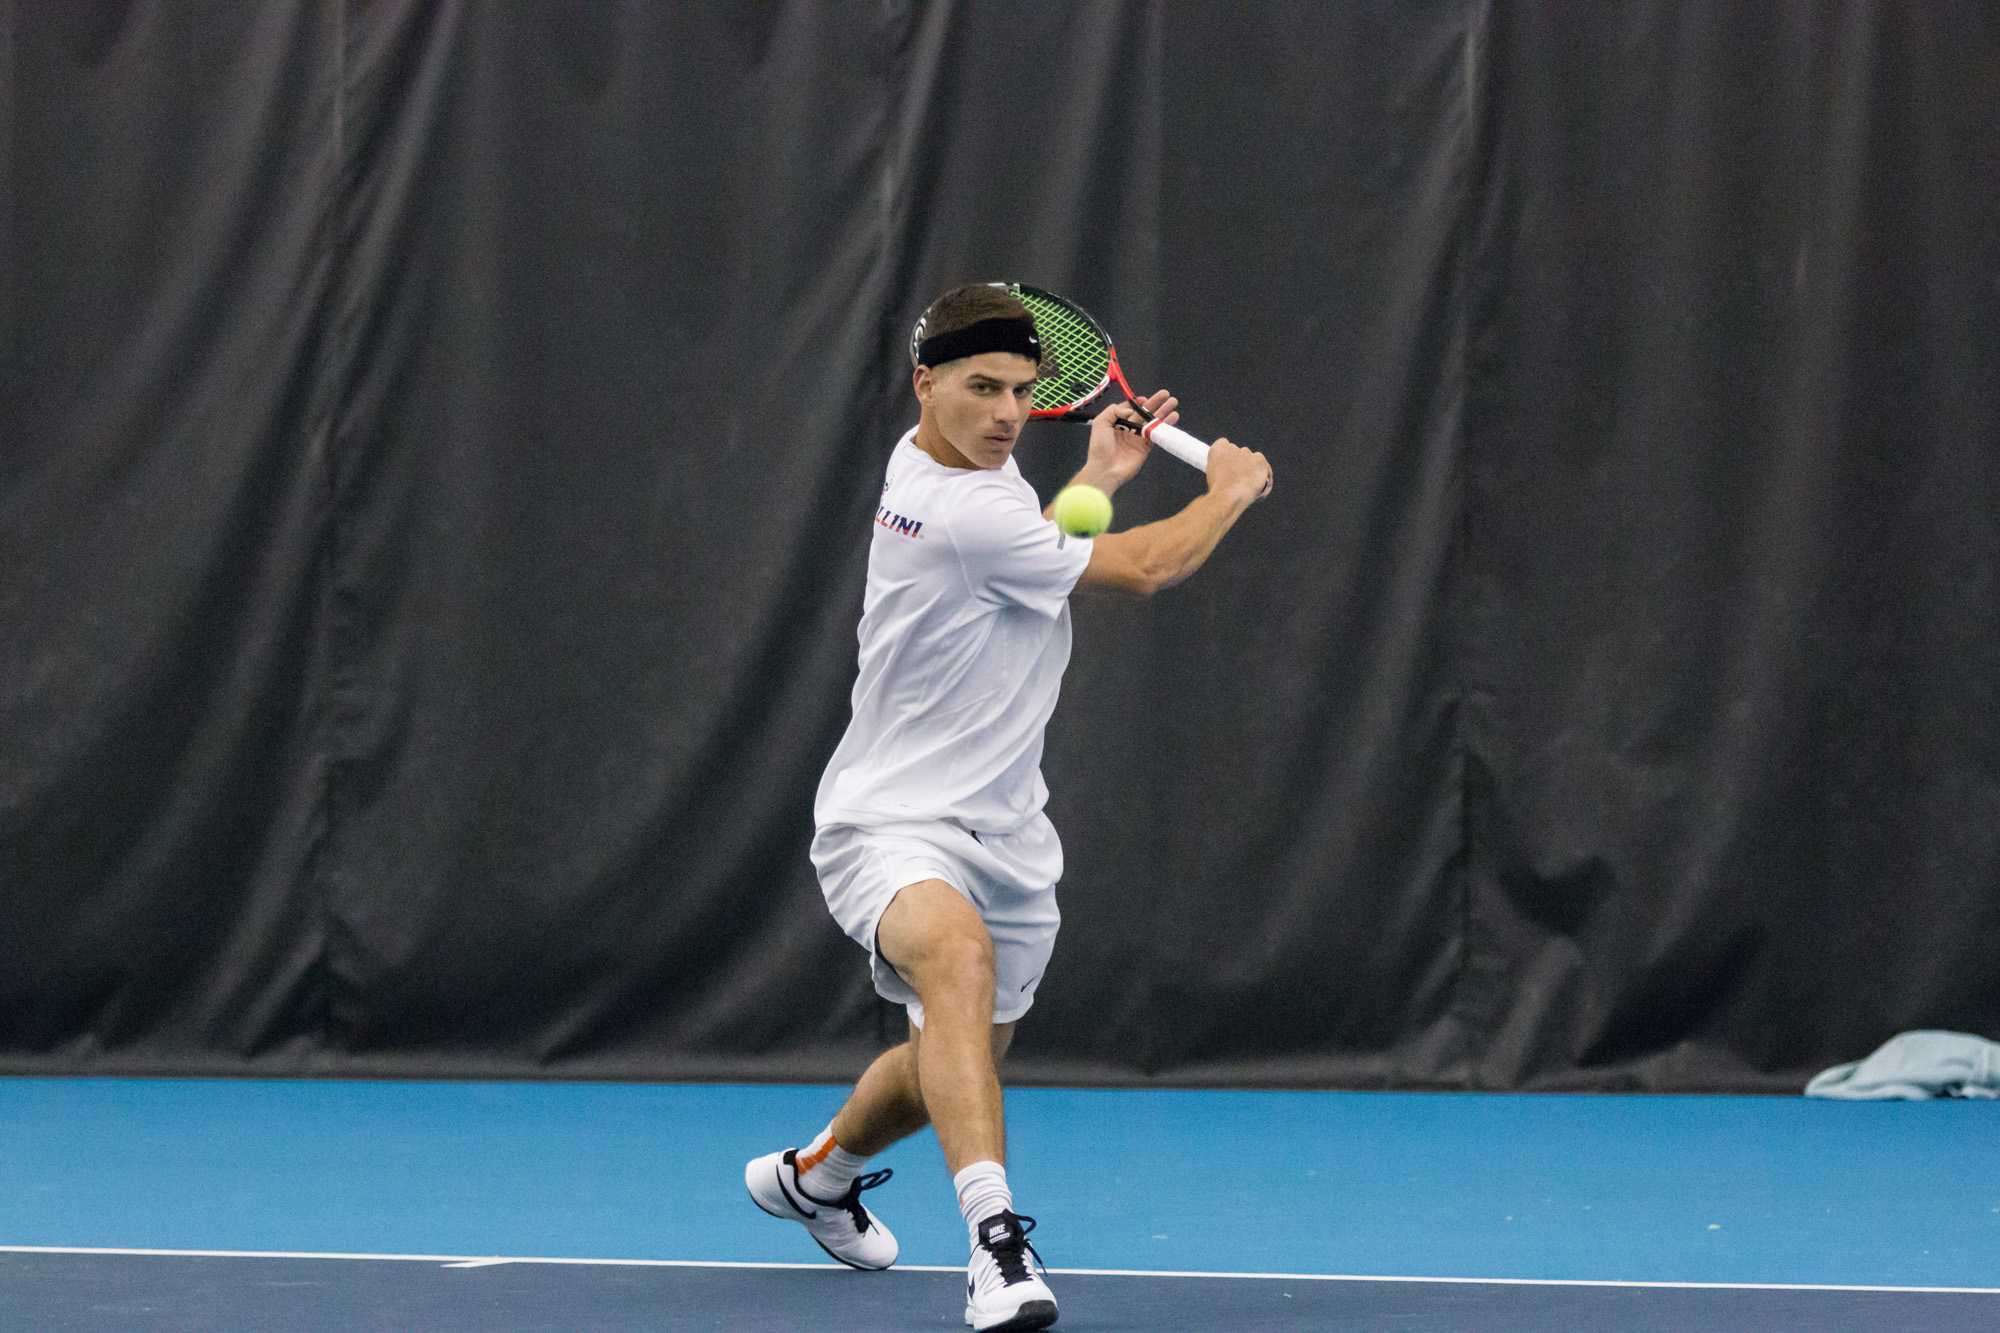 Illinois' Aron Hiltzik returns the ball during the match against Valparaiso at the Atkins Tennis Center on Friday, January 22, 2016. Illinois won 4-0.